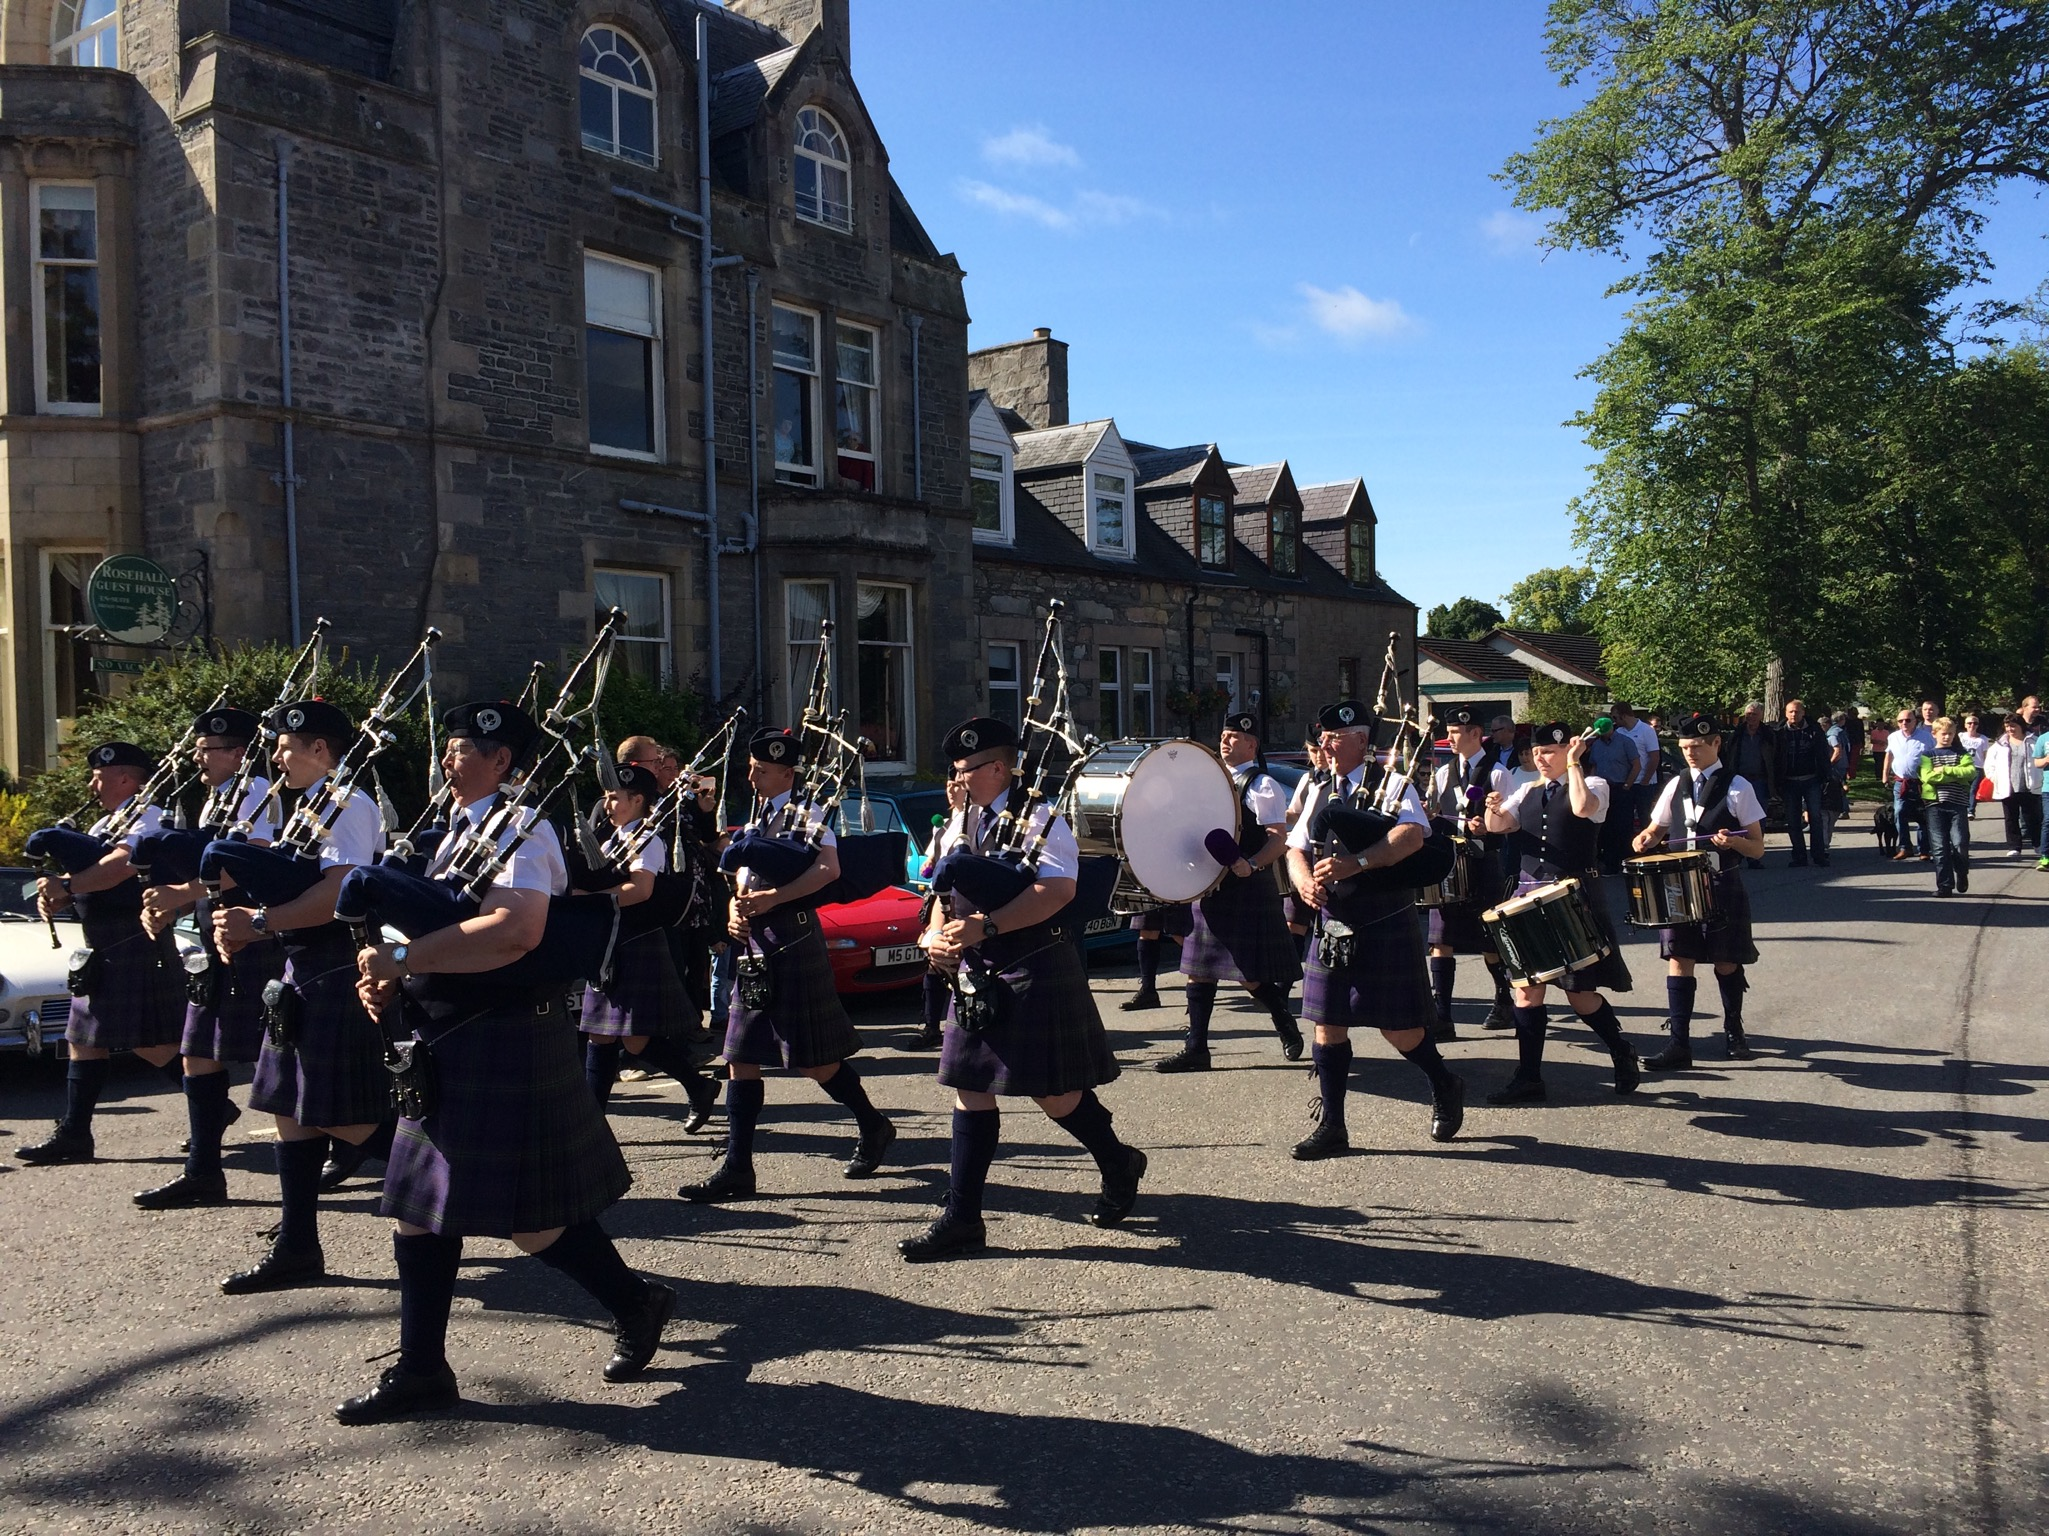 Pipe band in Grantown on Spey